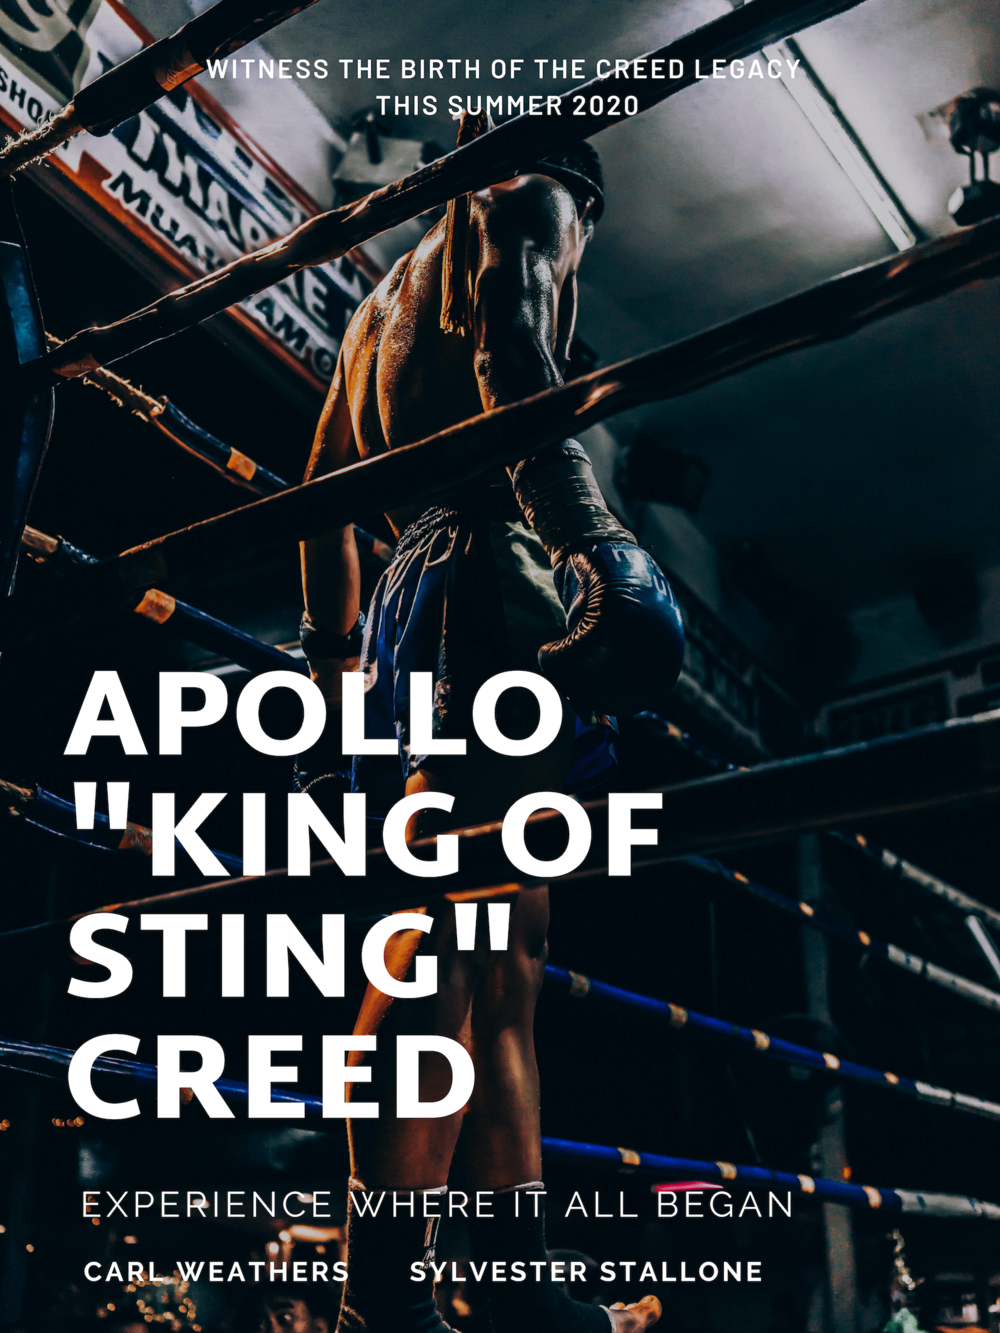 creed 2 concept 4to3.png